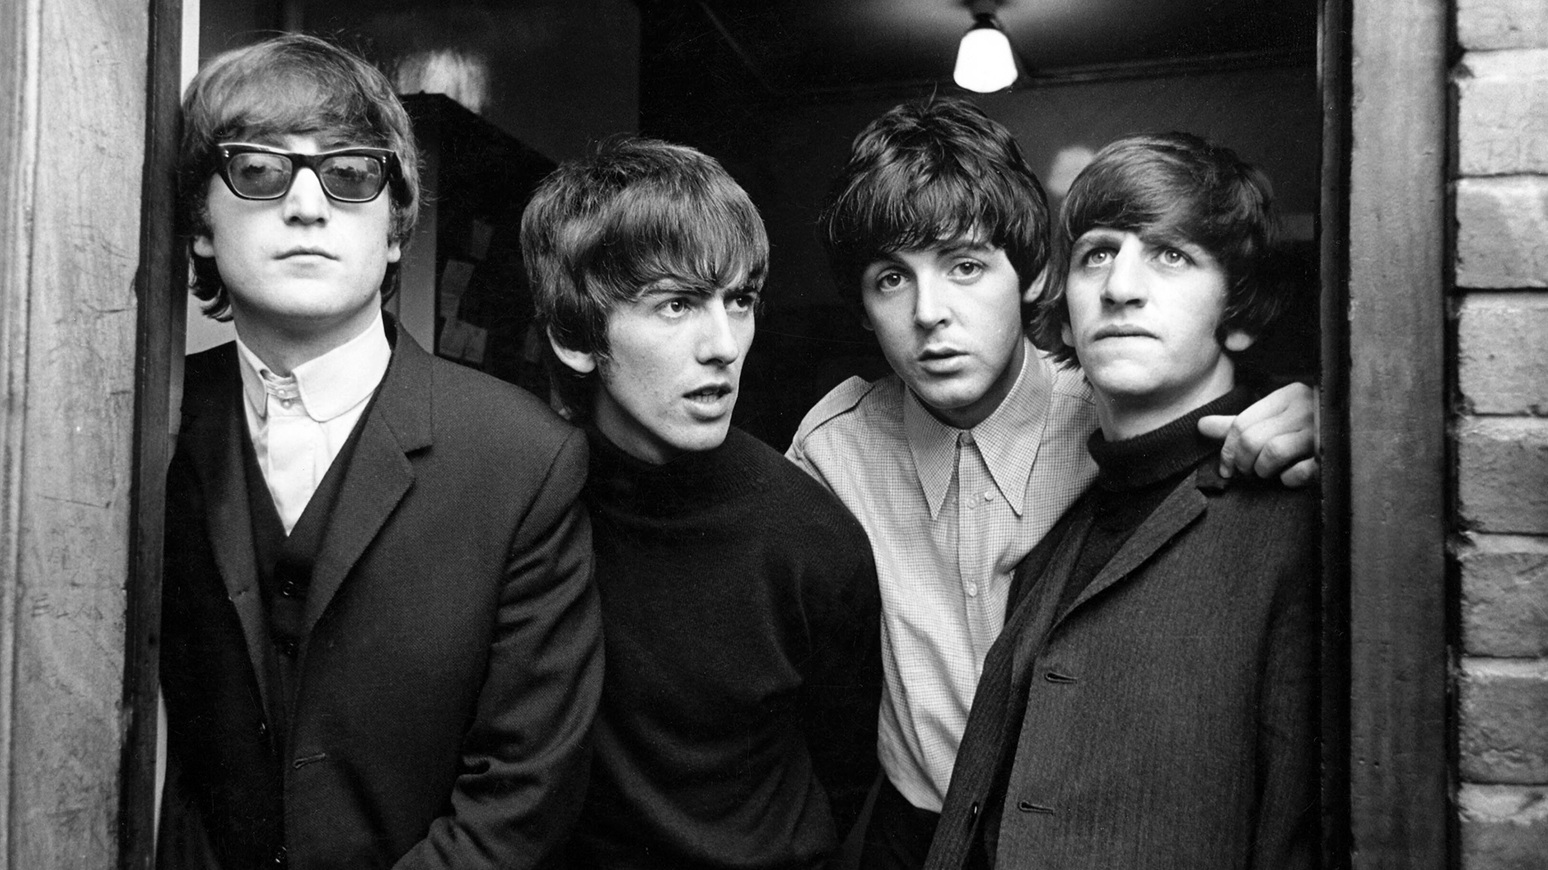 the-beatles-1965-bw-billboard-1548.jpg